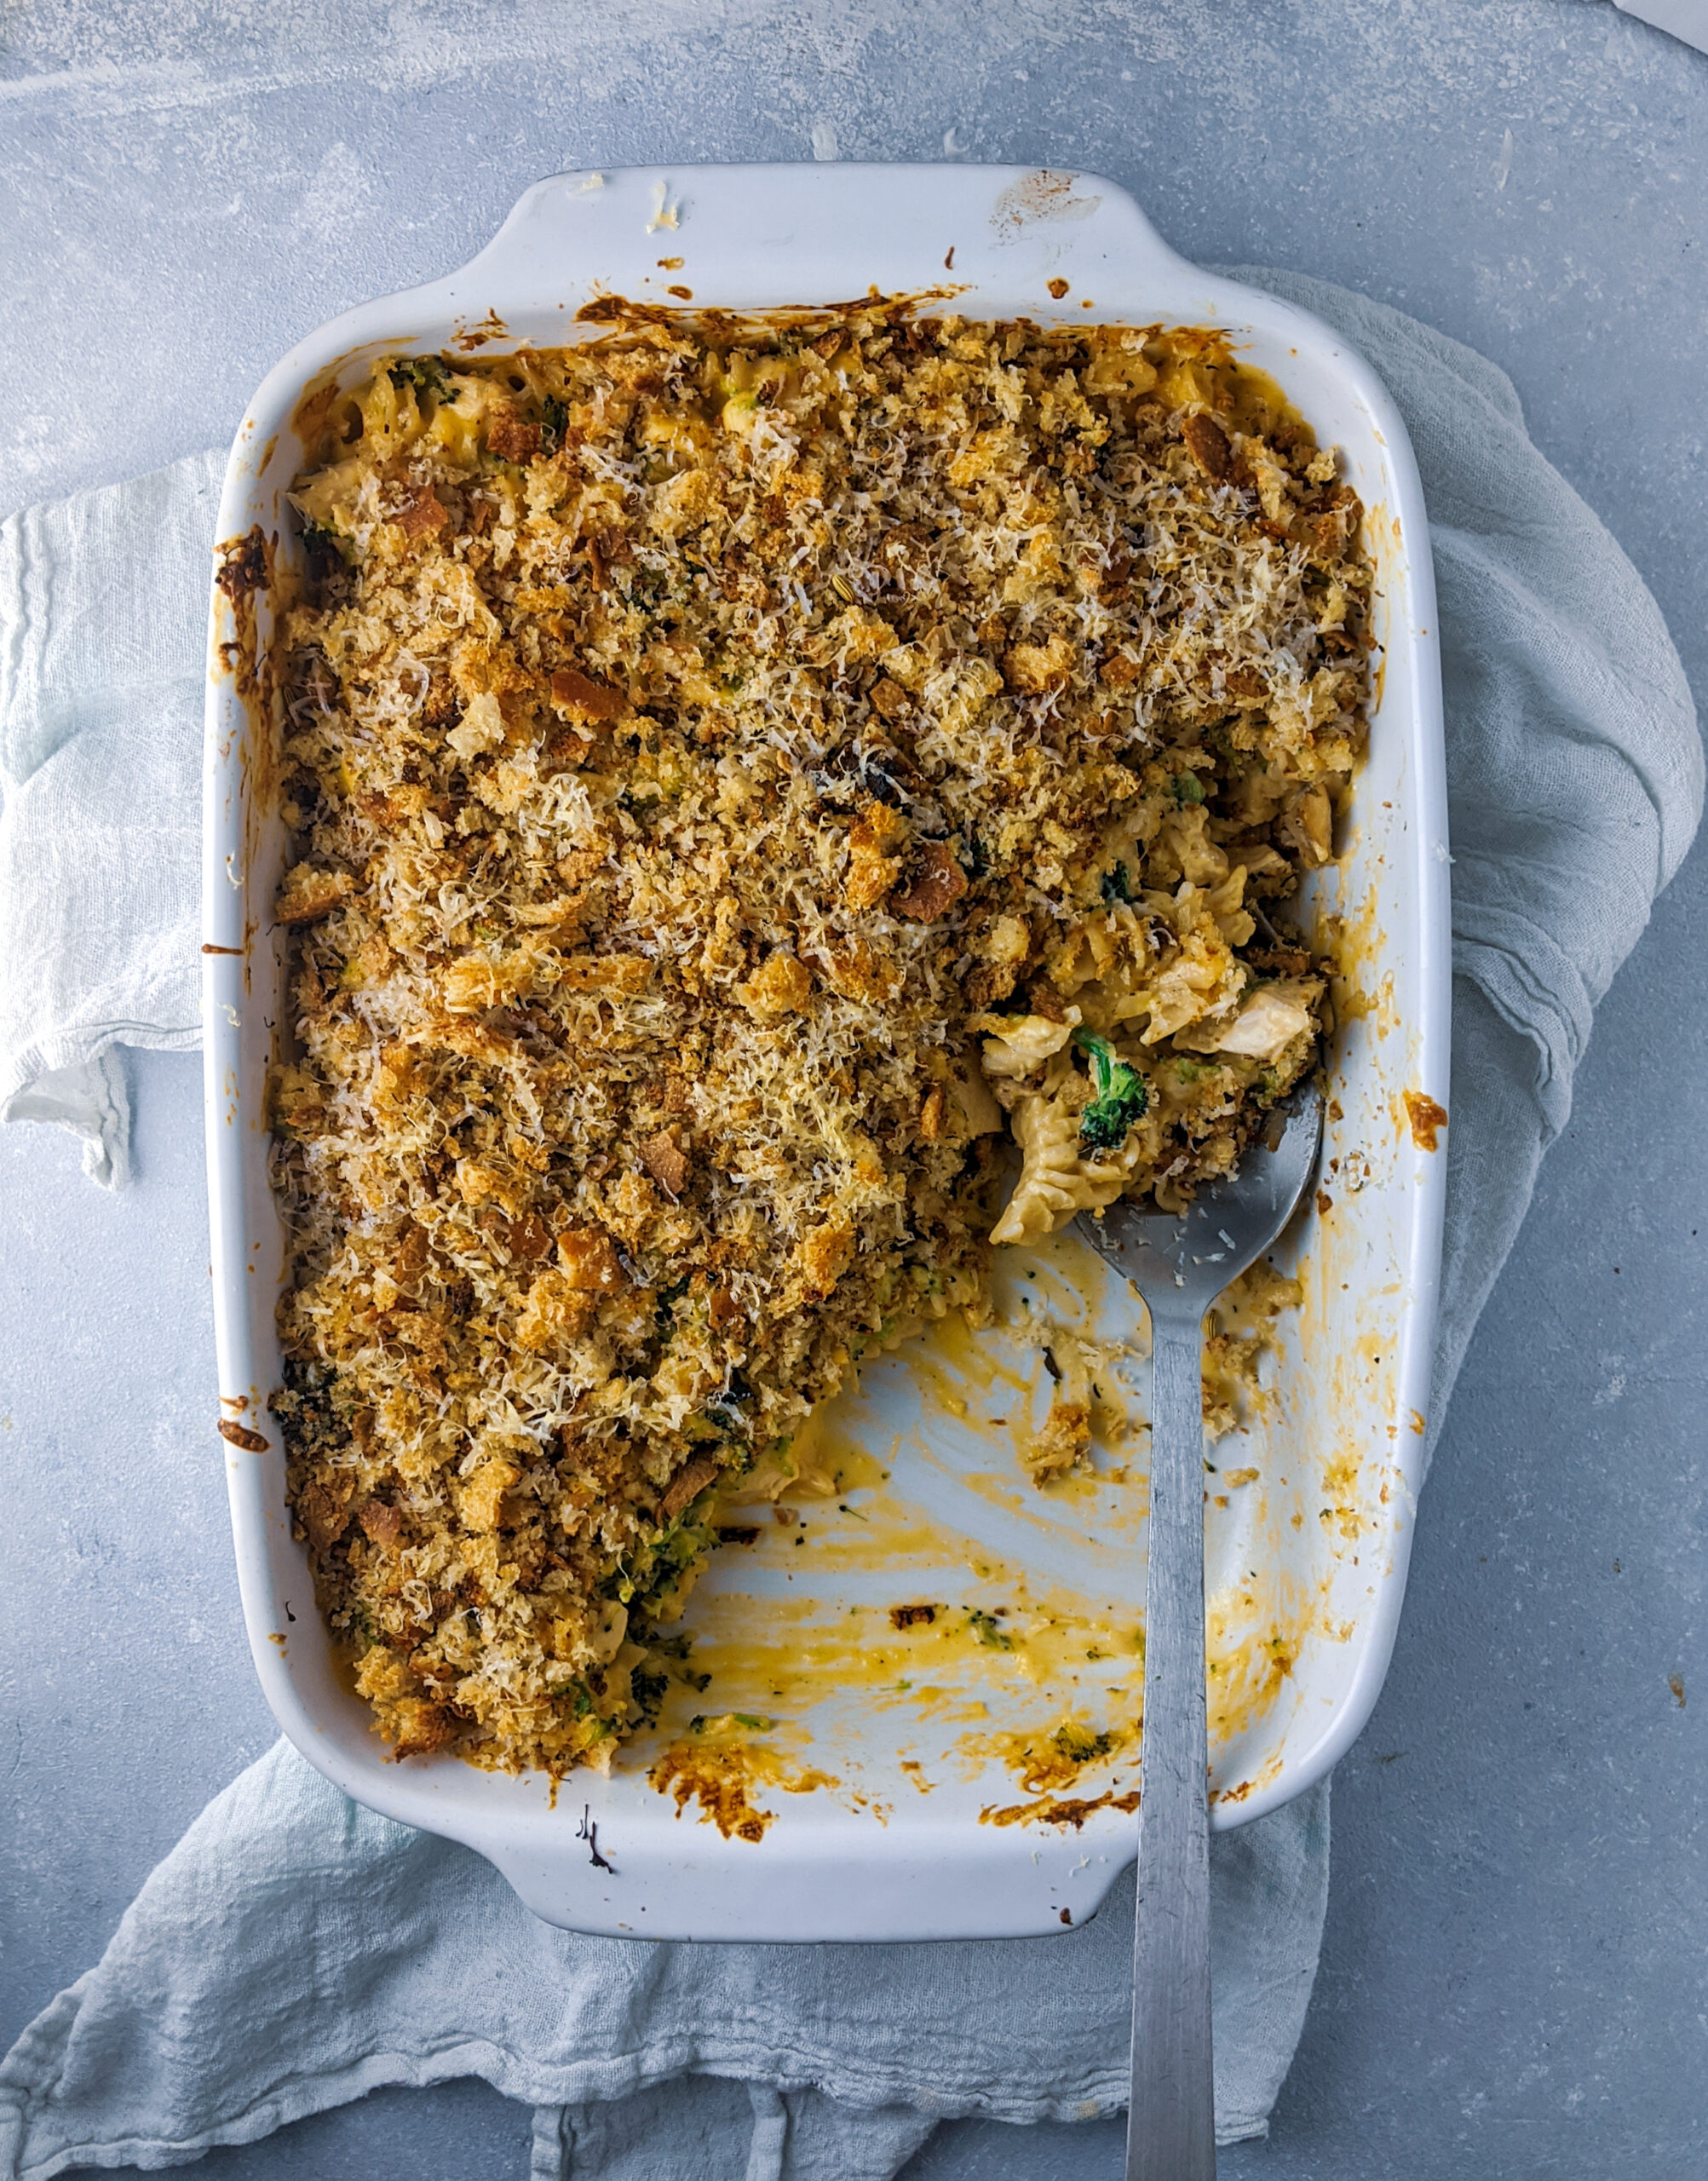 Baked Chicken and Broccoli Mac-n-Cheese with Sourdough Breadcrumbs